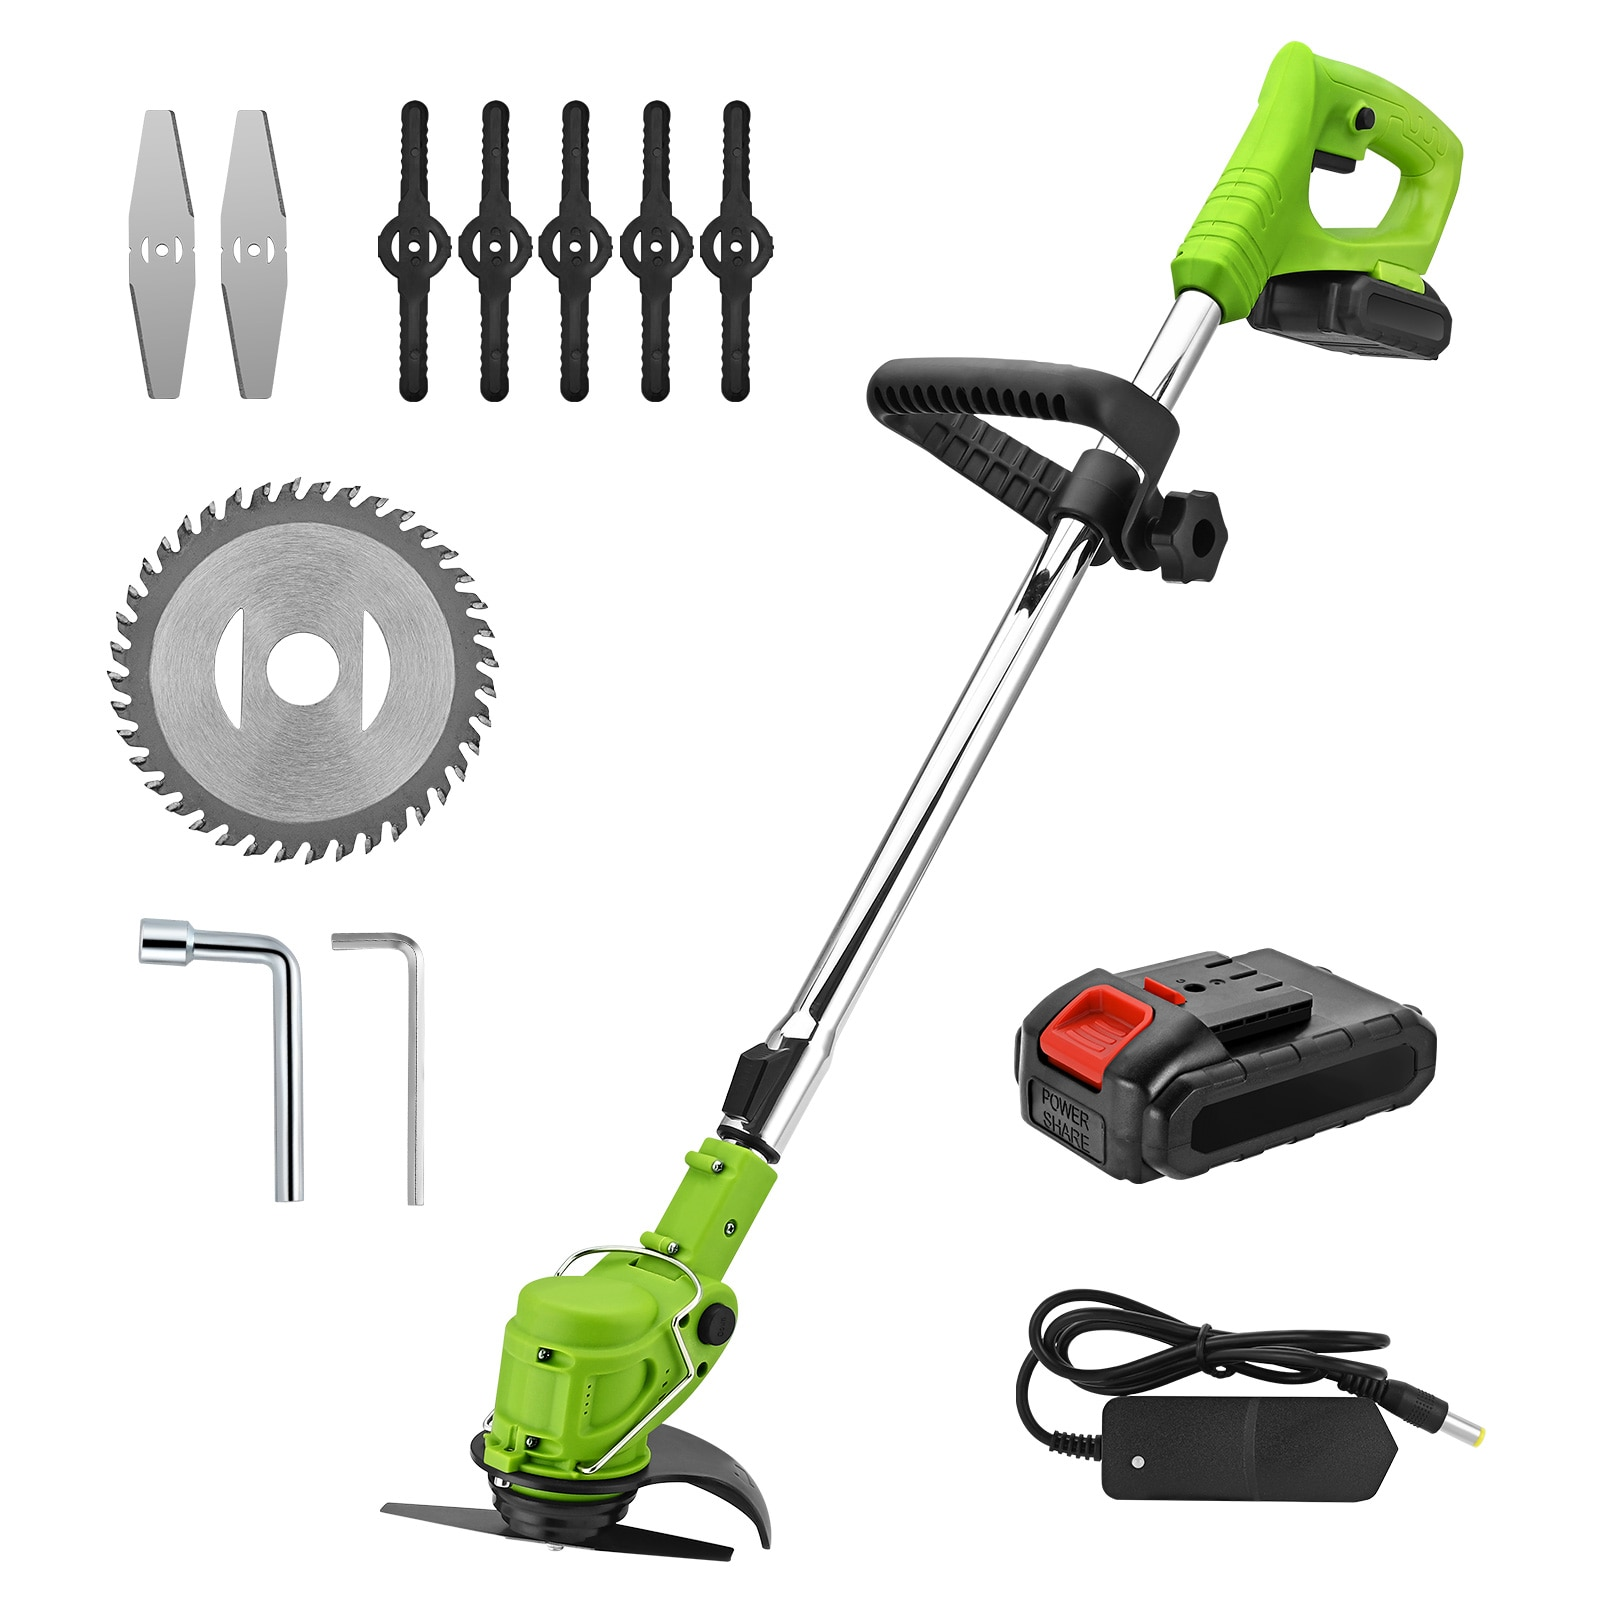 Cordless Grass Trimmer Brush Cutter Wireless Handheld Lawn Mower Garden Tools For Weed-Wacking With 21V Lithium-ion Battery